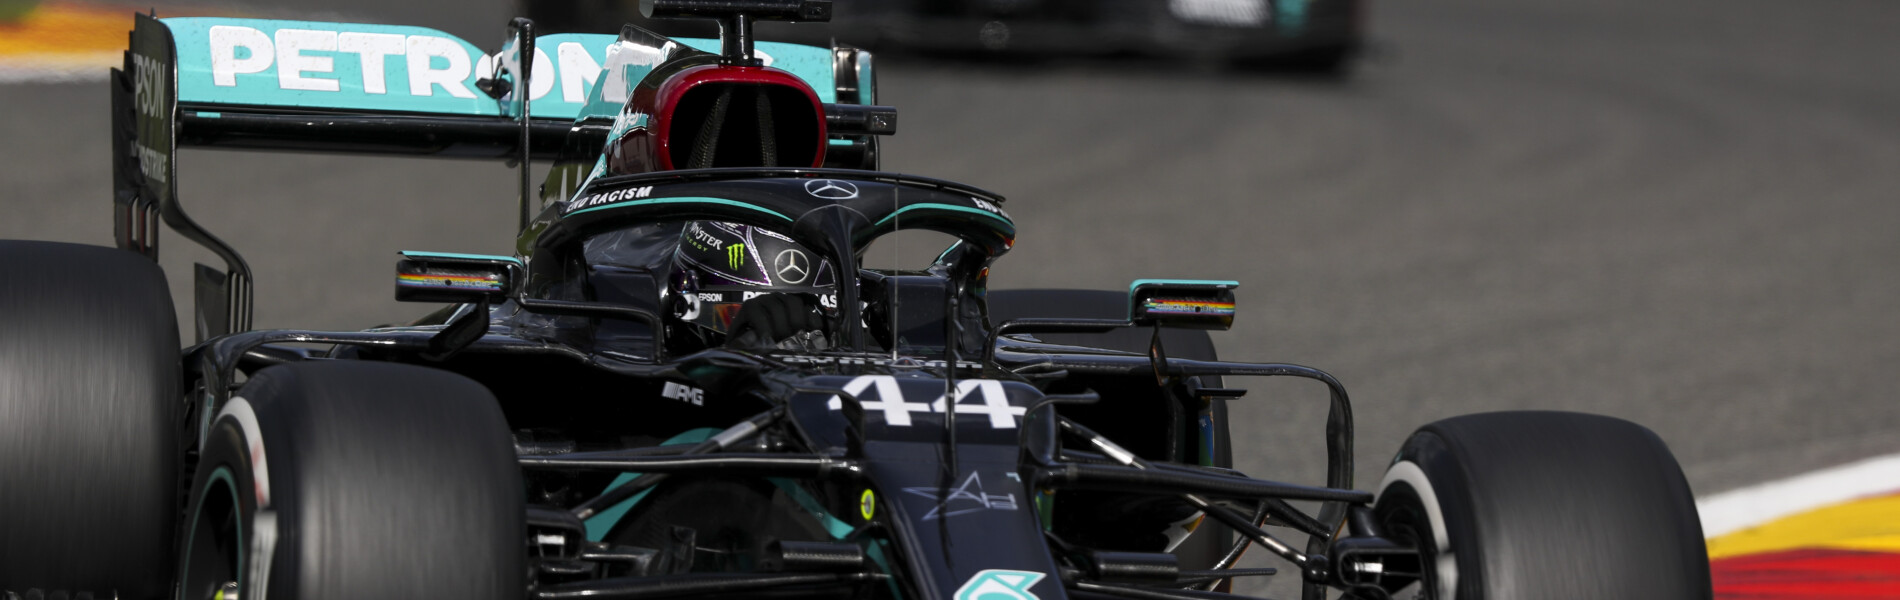 Images from the 2020 F1 Belgian Grand Prix